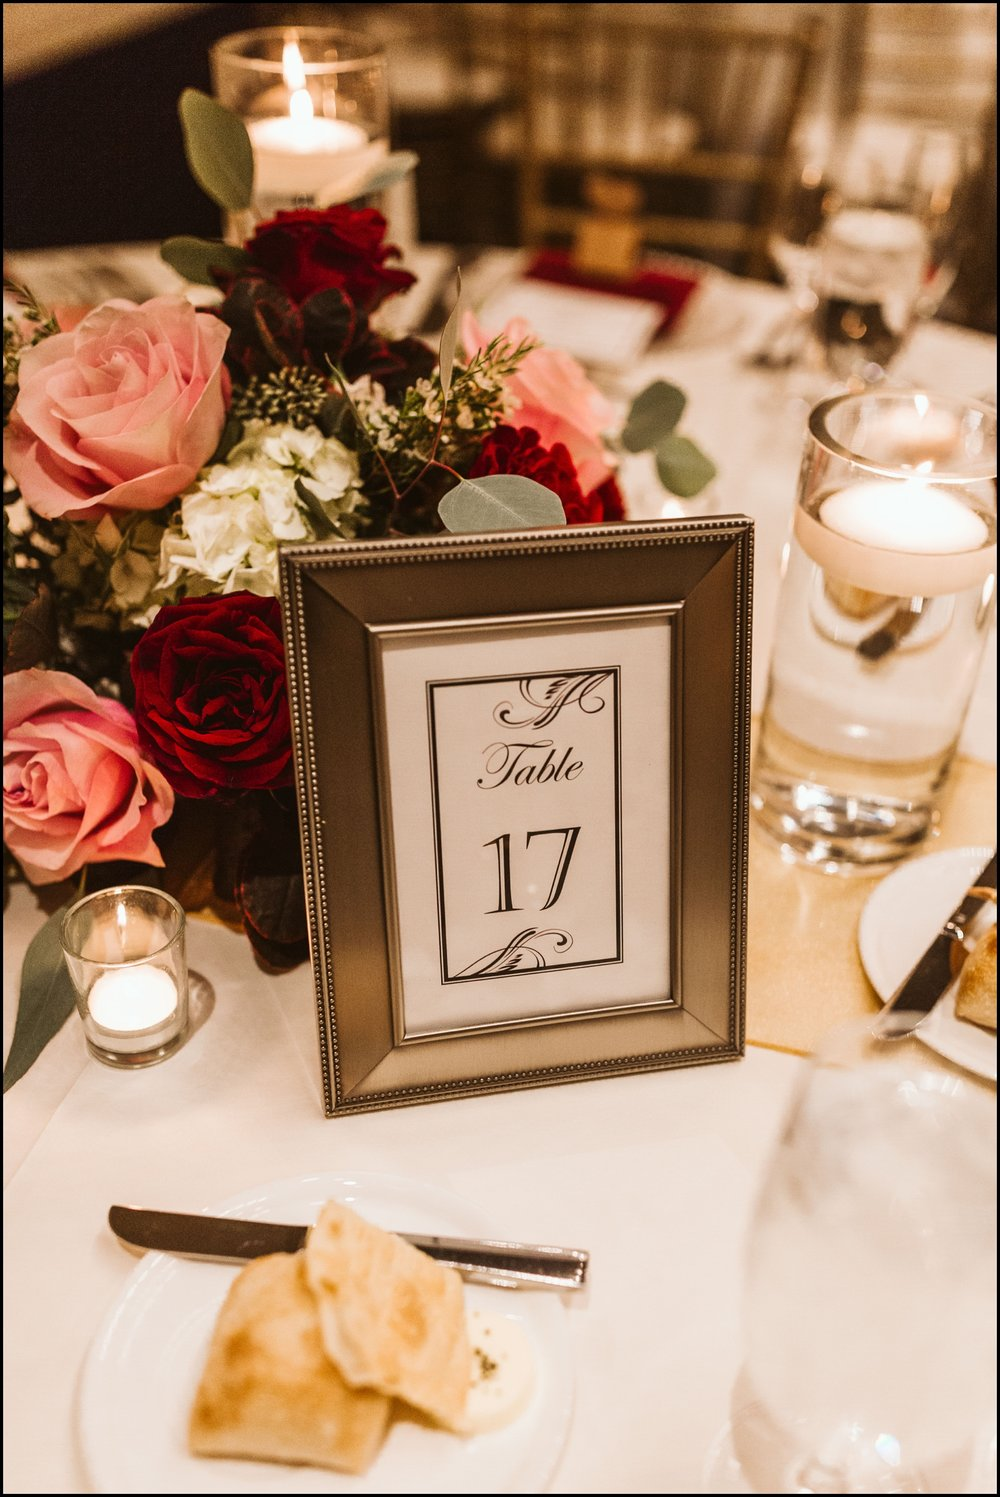 Table number sign decor